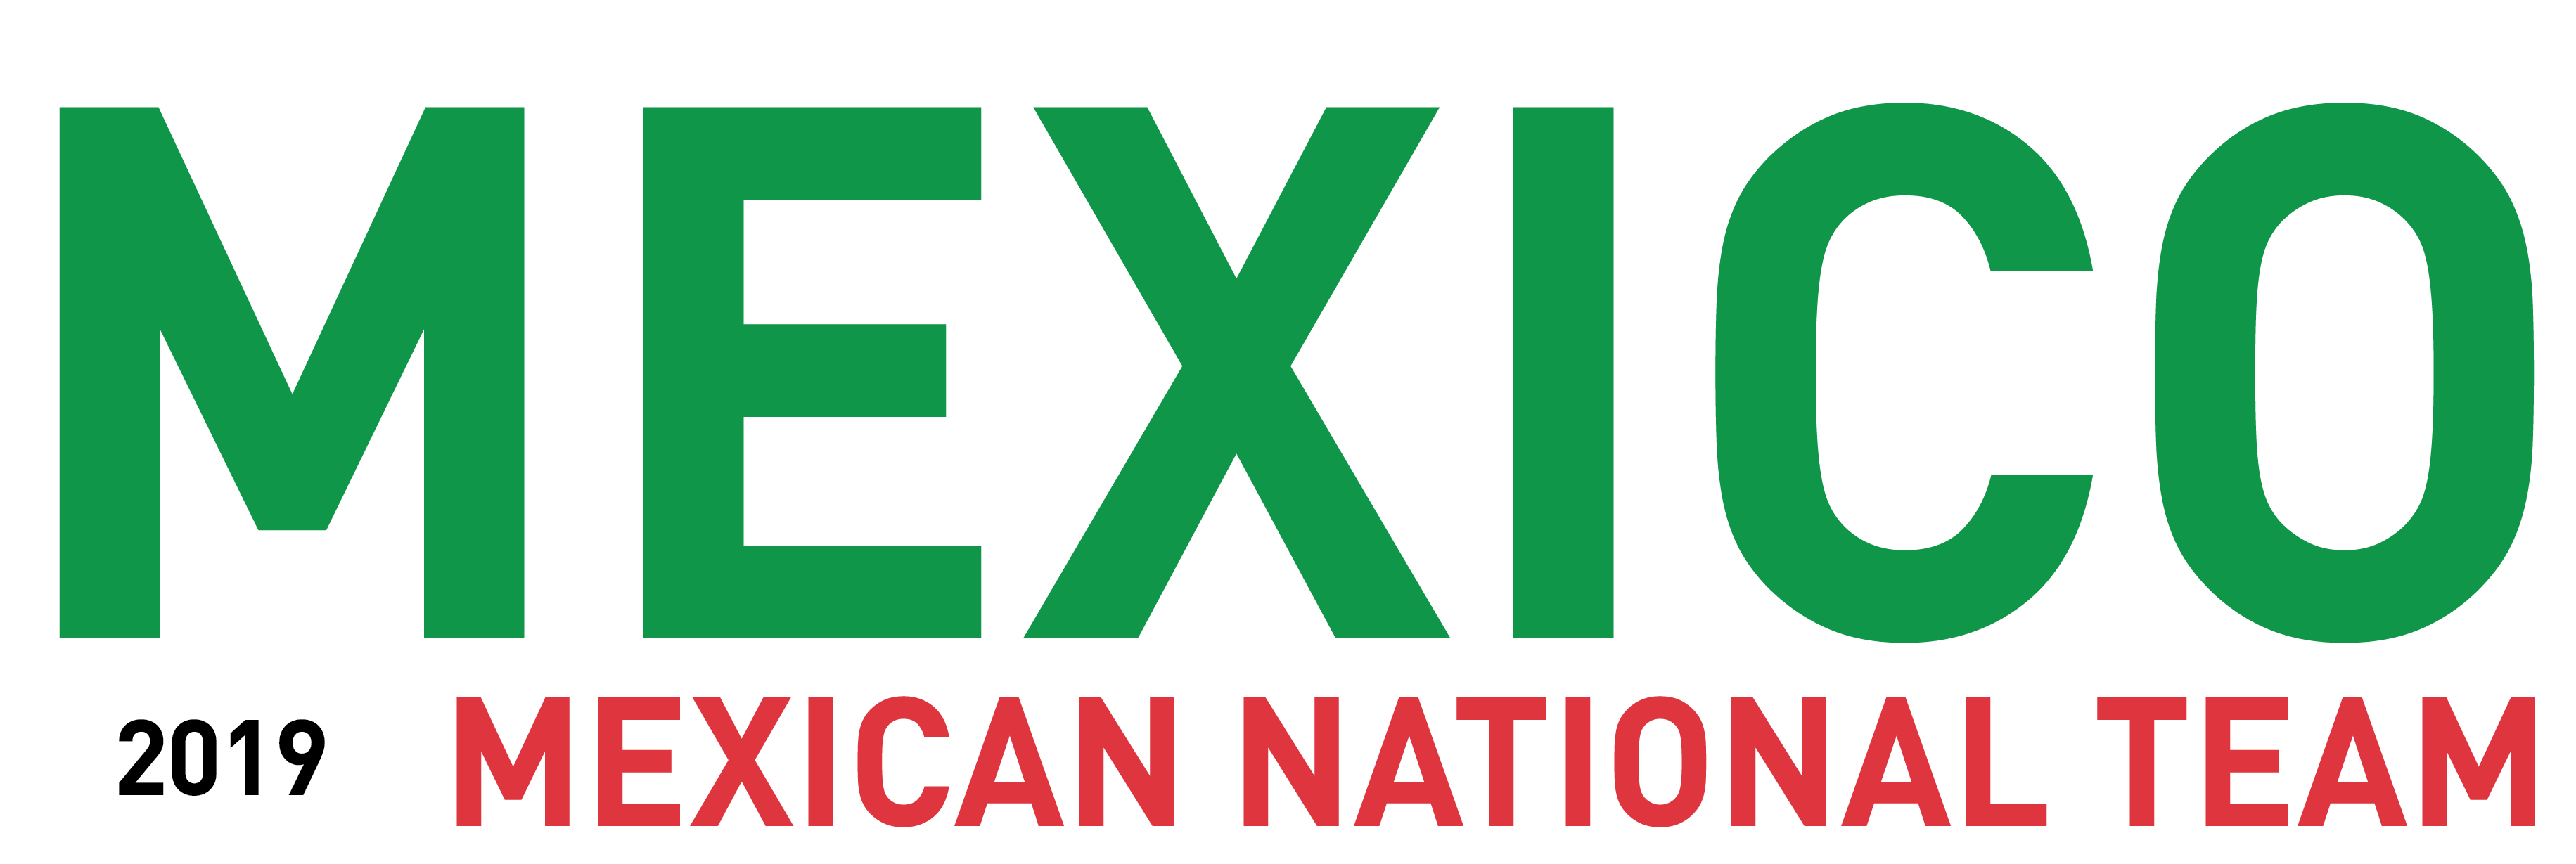 The Mexican National Team 2020 U.S. Tour